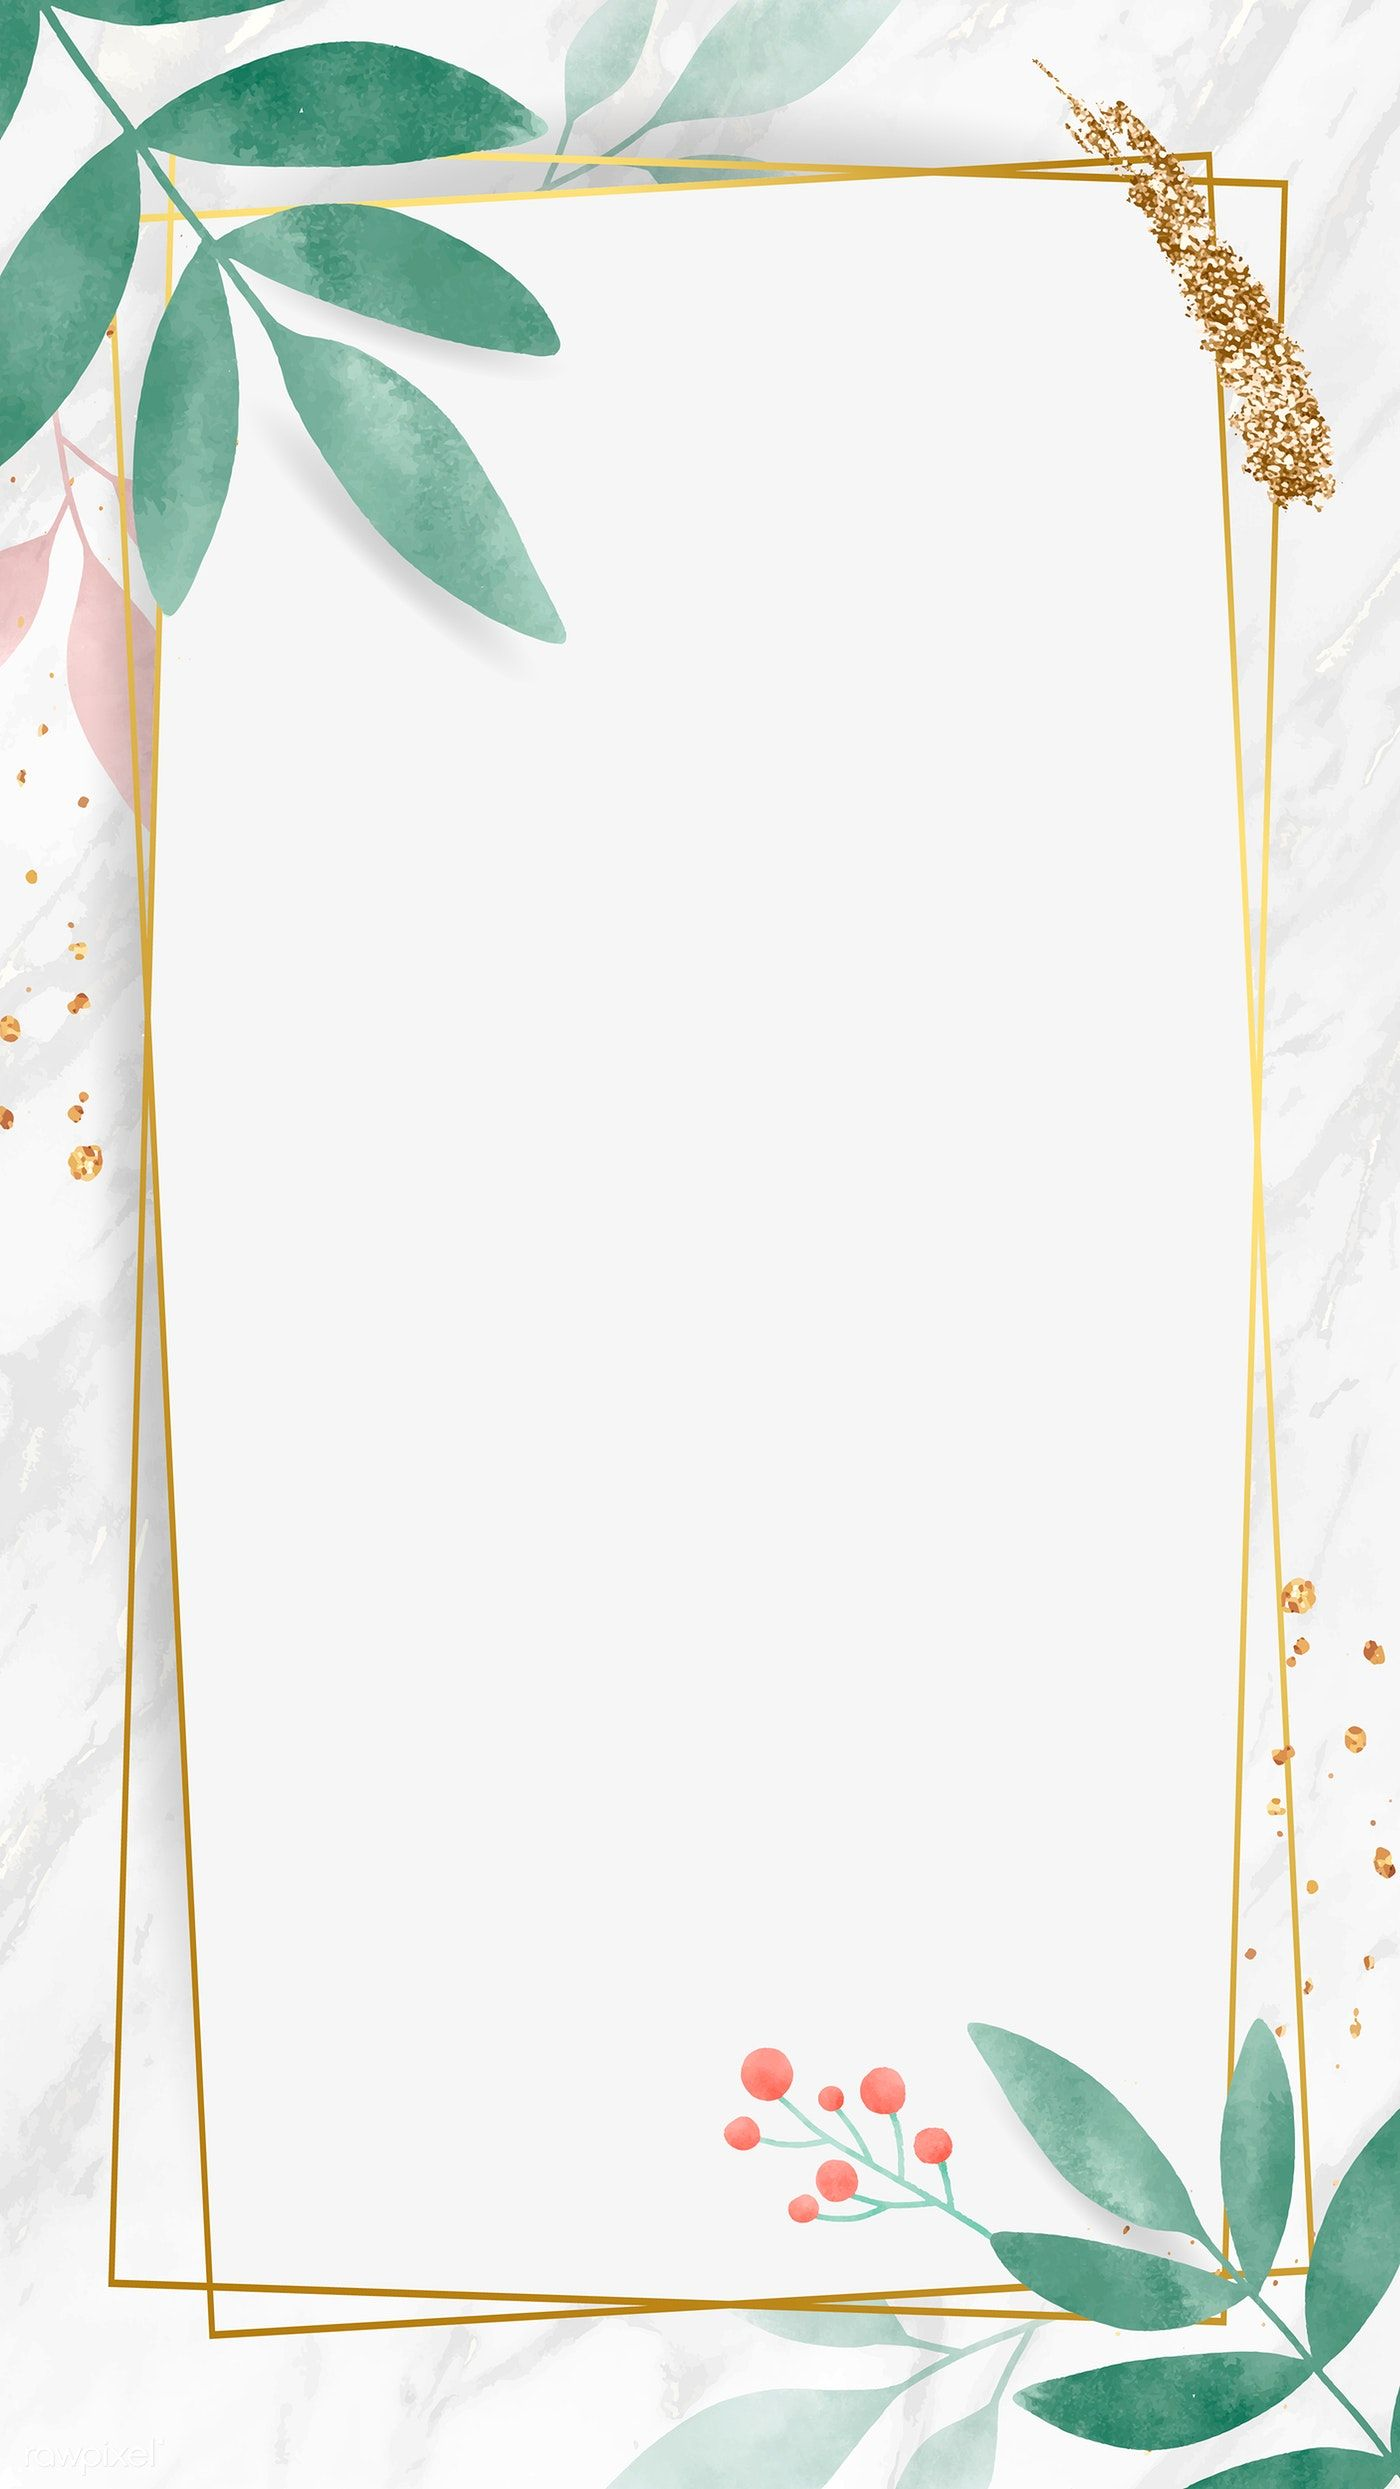 Watercolor Leafy Frame Mobile Phone Wallpaper Vector Premium Image By Rawpixel Com Toon Flower Background Wallpaper Framed Wallpaper Wallpaper Vector